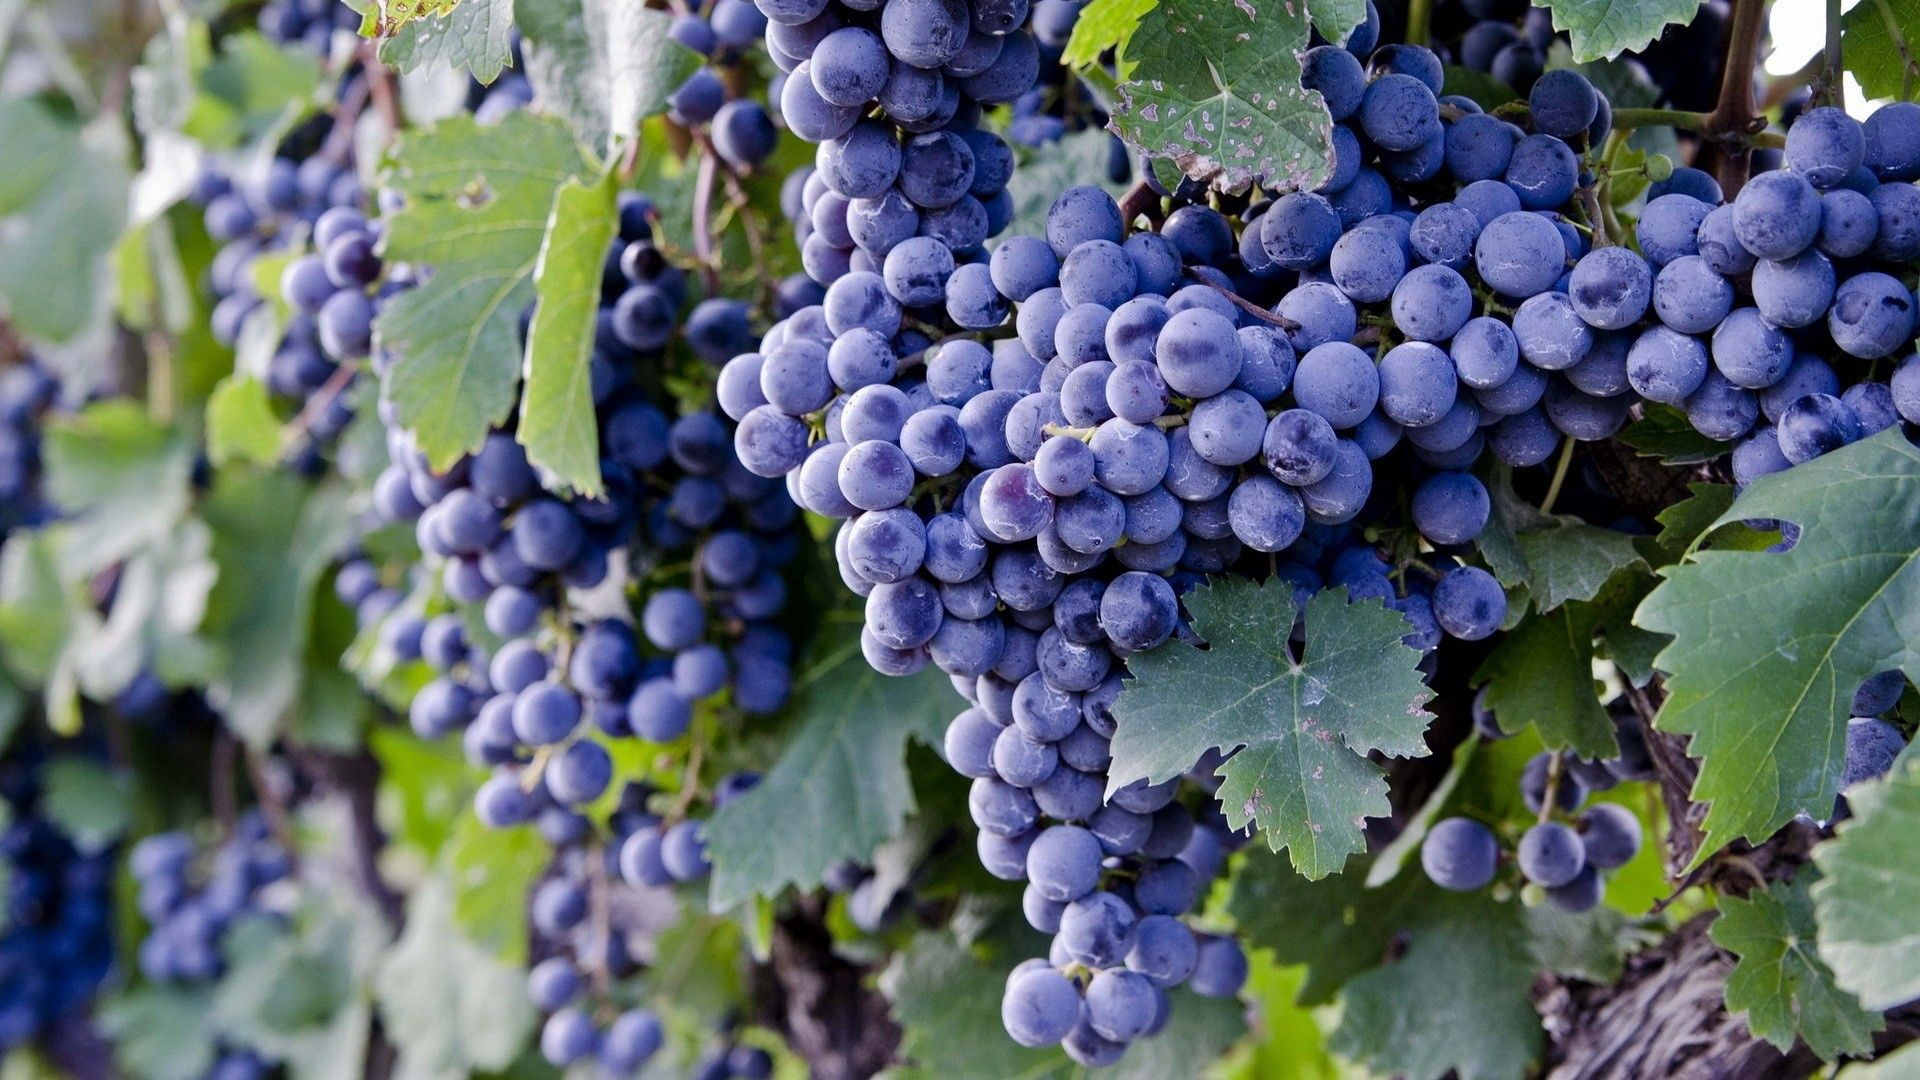 88052 download wallpaper Food, Branch, Grapes, Ripe screensavers and pictures for free